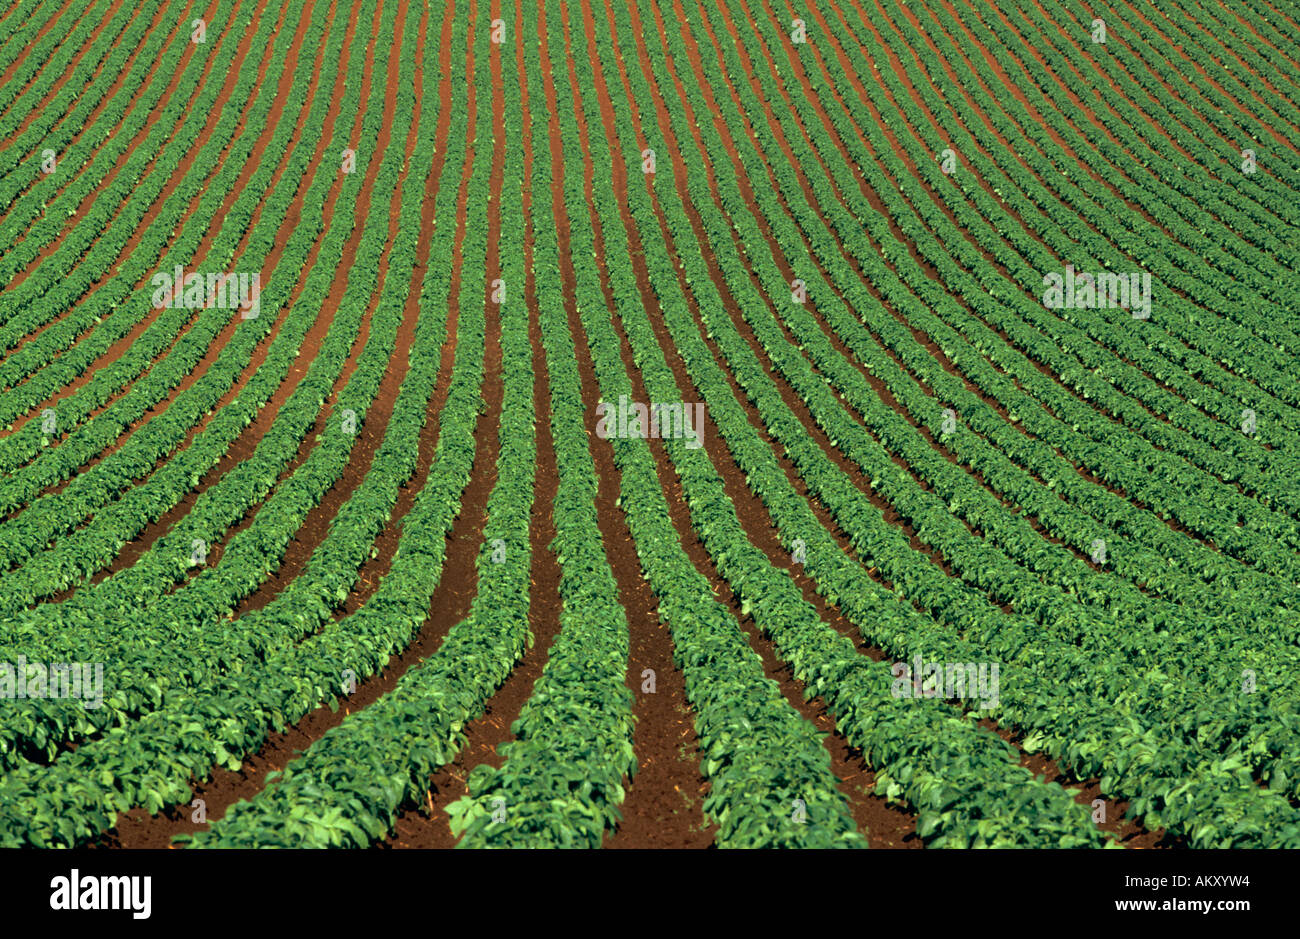 Potato crop, early summer, , Ulverstone,  Tasmania, Australia, horizontal, - Stock Image